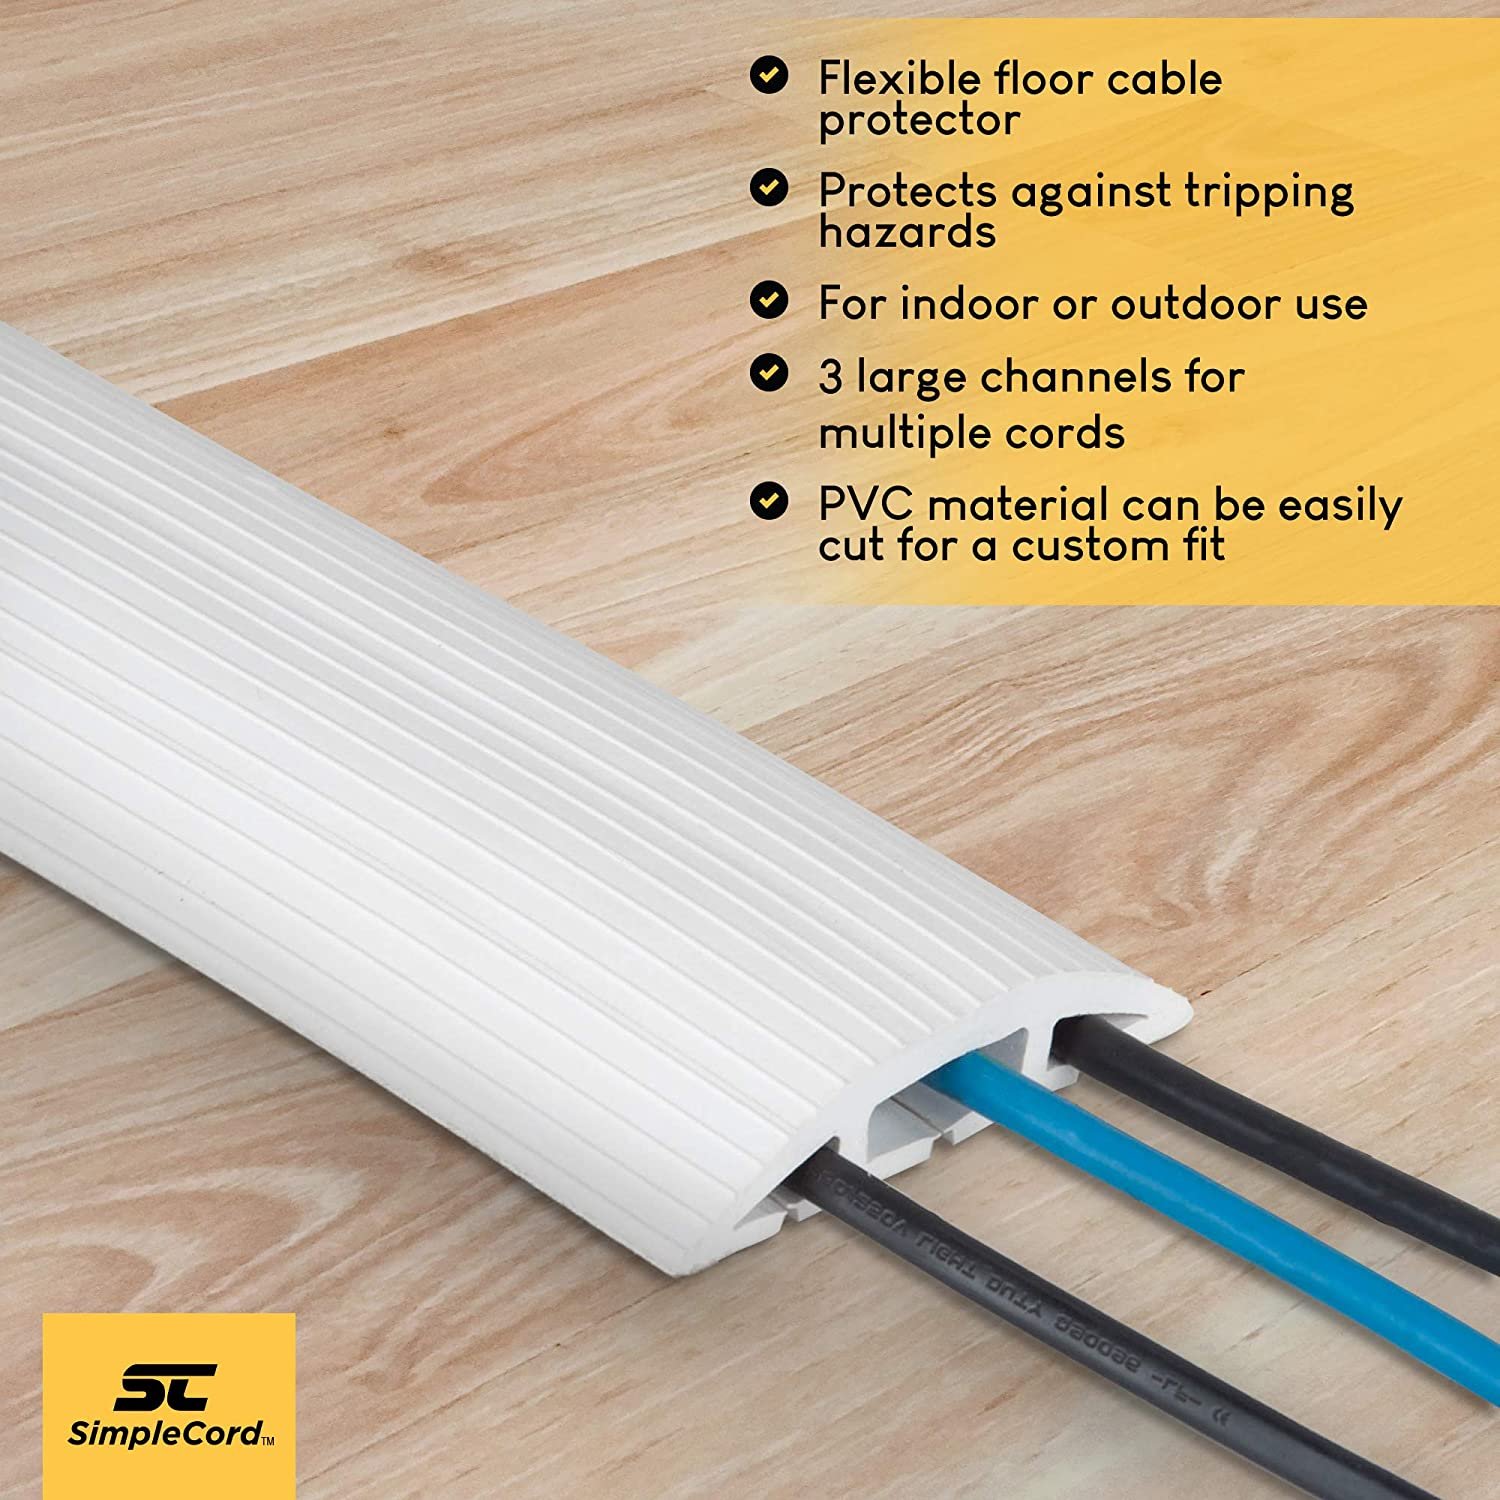 Floor 4 Ft White Cord Protector Covers Cables Cords Or Wiring Channels Pvc Wires 3 Channel On Raceway For Sidewalks Walkways In The Home Office